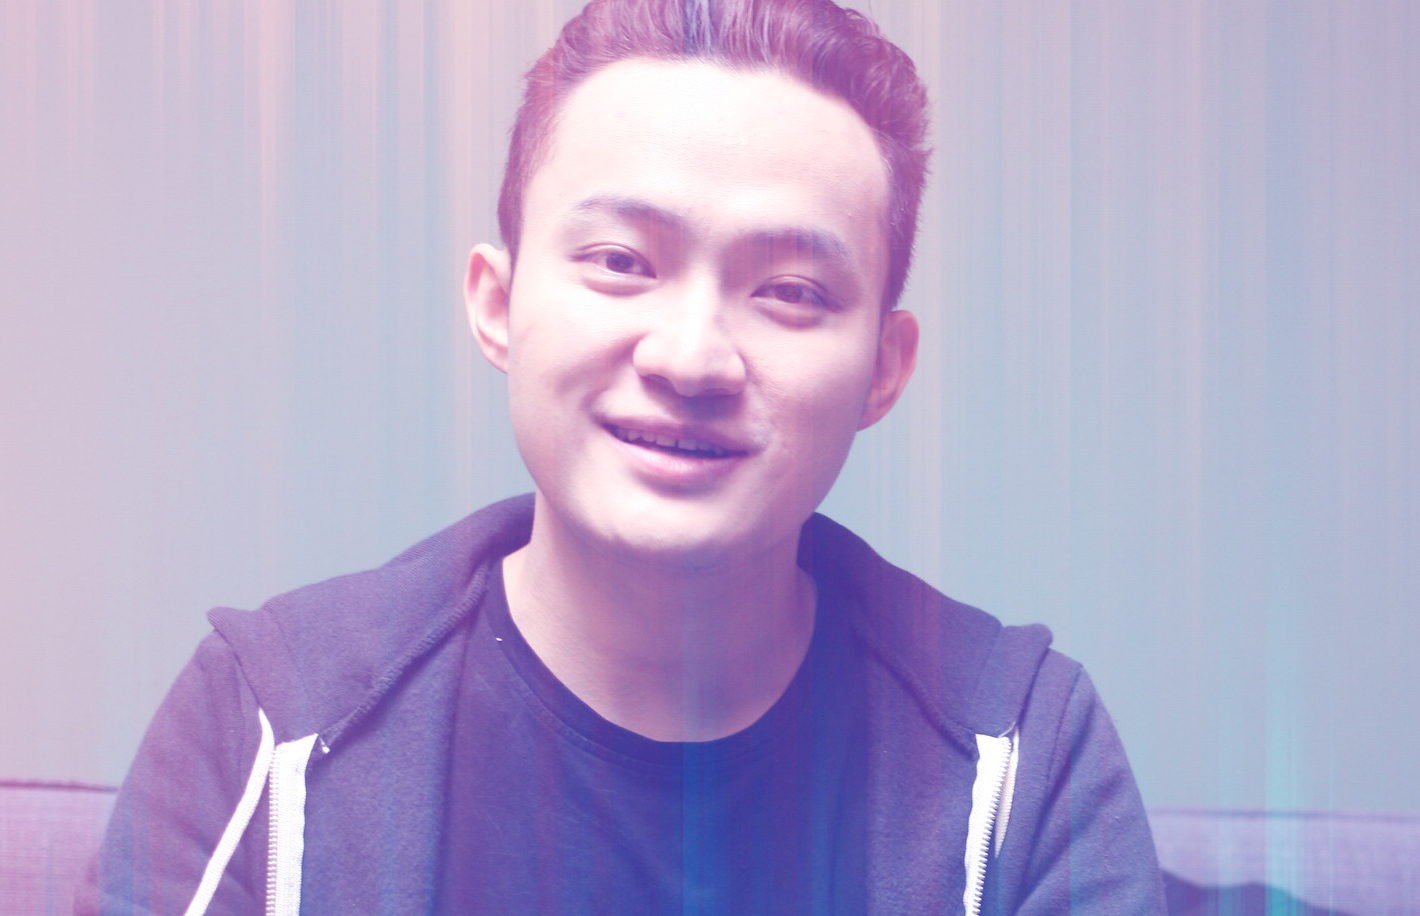 Justin Sun Hints at Retirement, Joins Research Project at Communist Party School